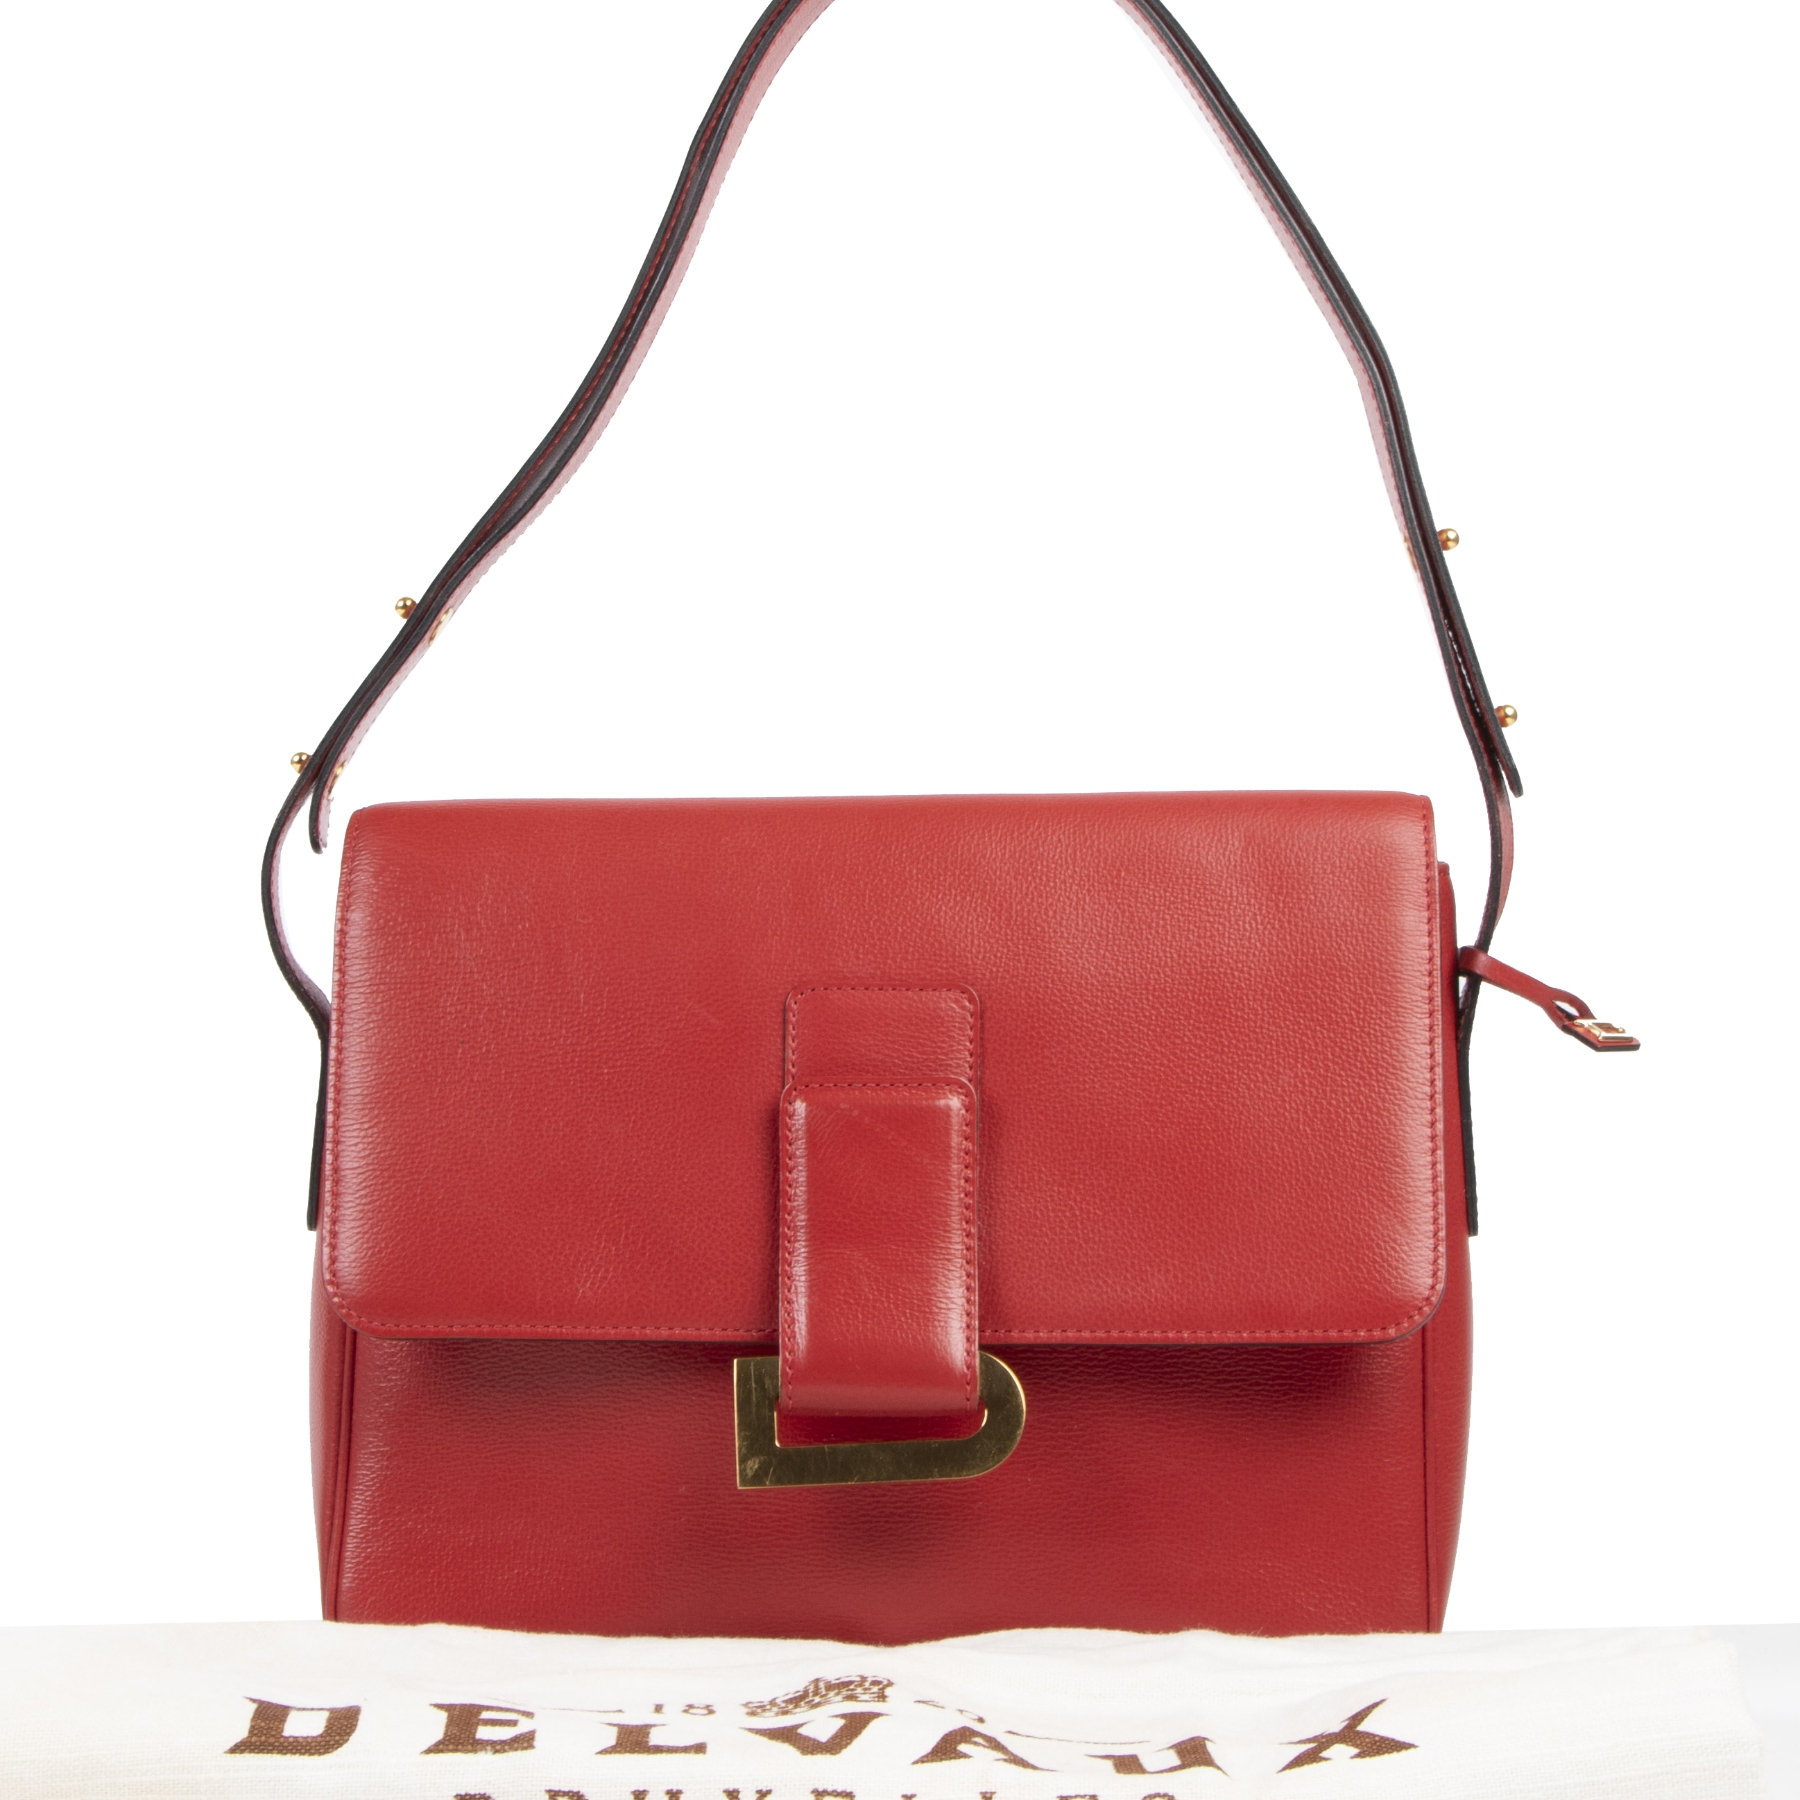 skip the waitinglist Delvaux Red Poirier Shoulder Bag